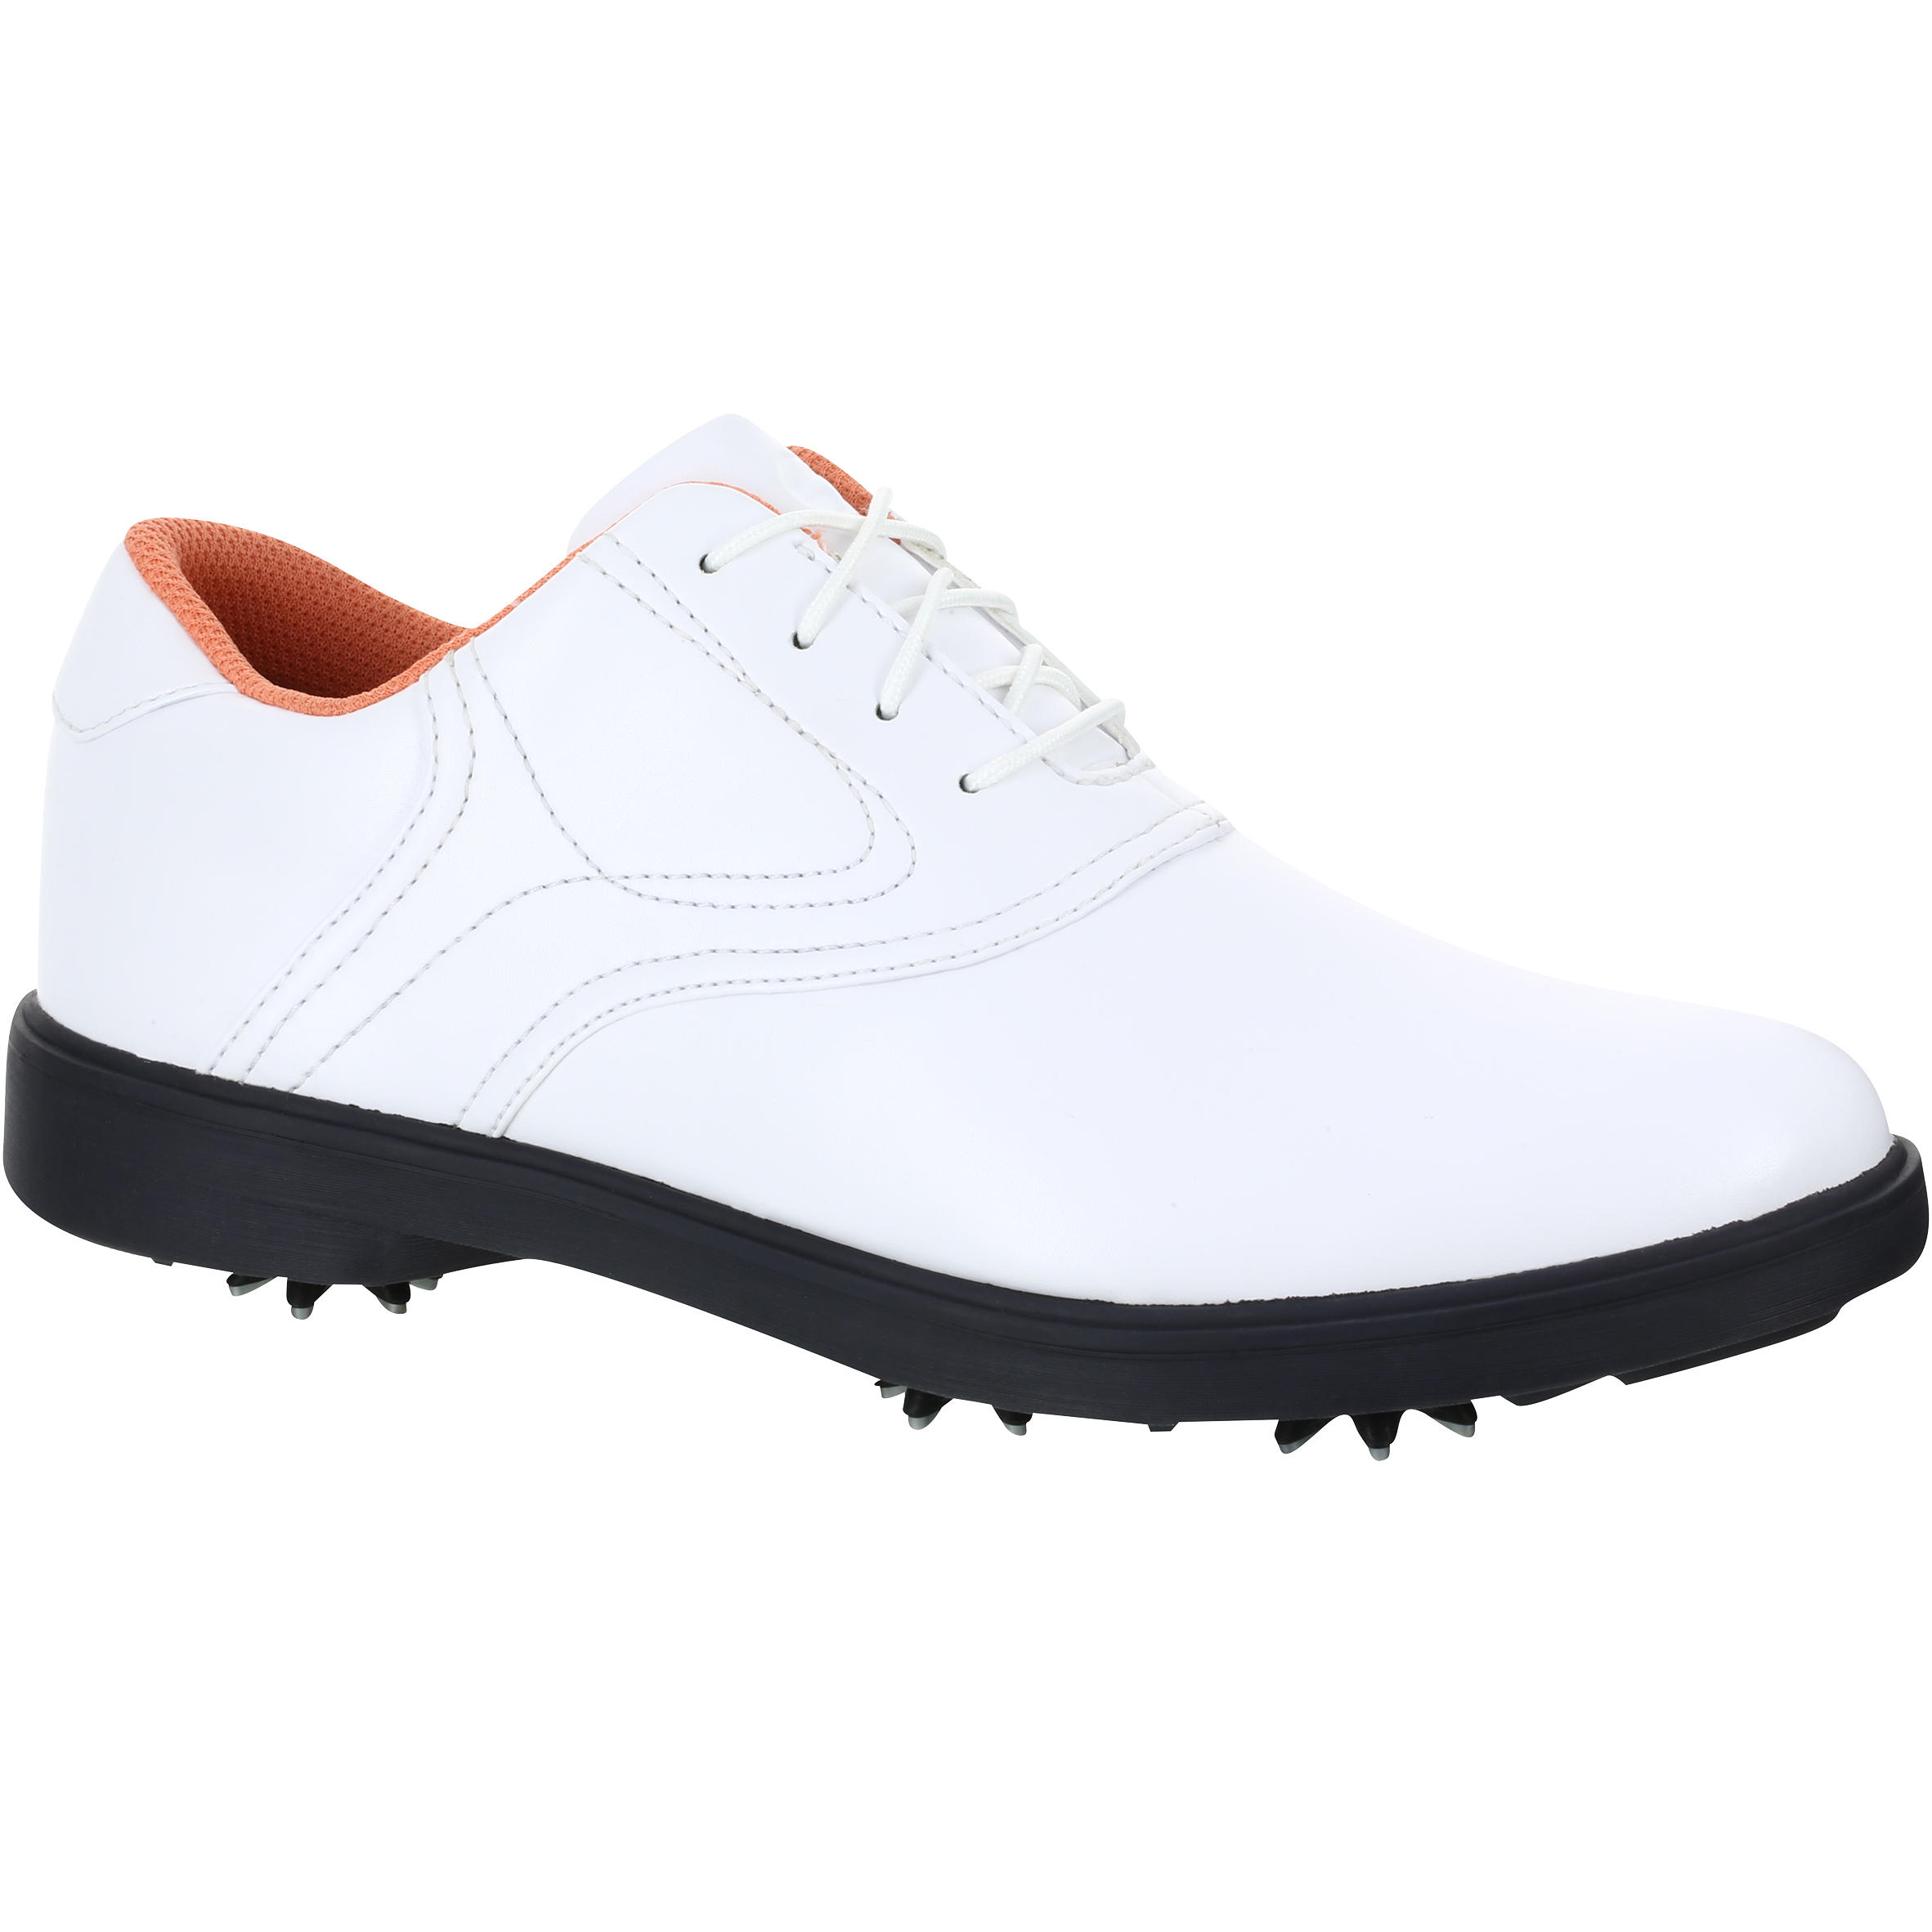 CHAUSSURES GOLF FEMME À CRAMPONS 500 BLANCHES